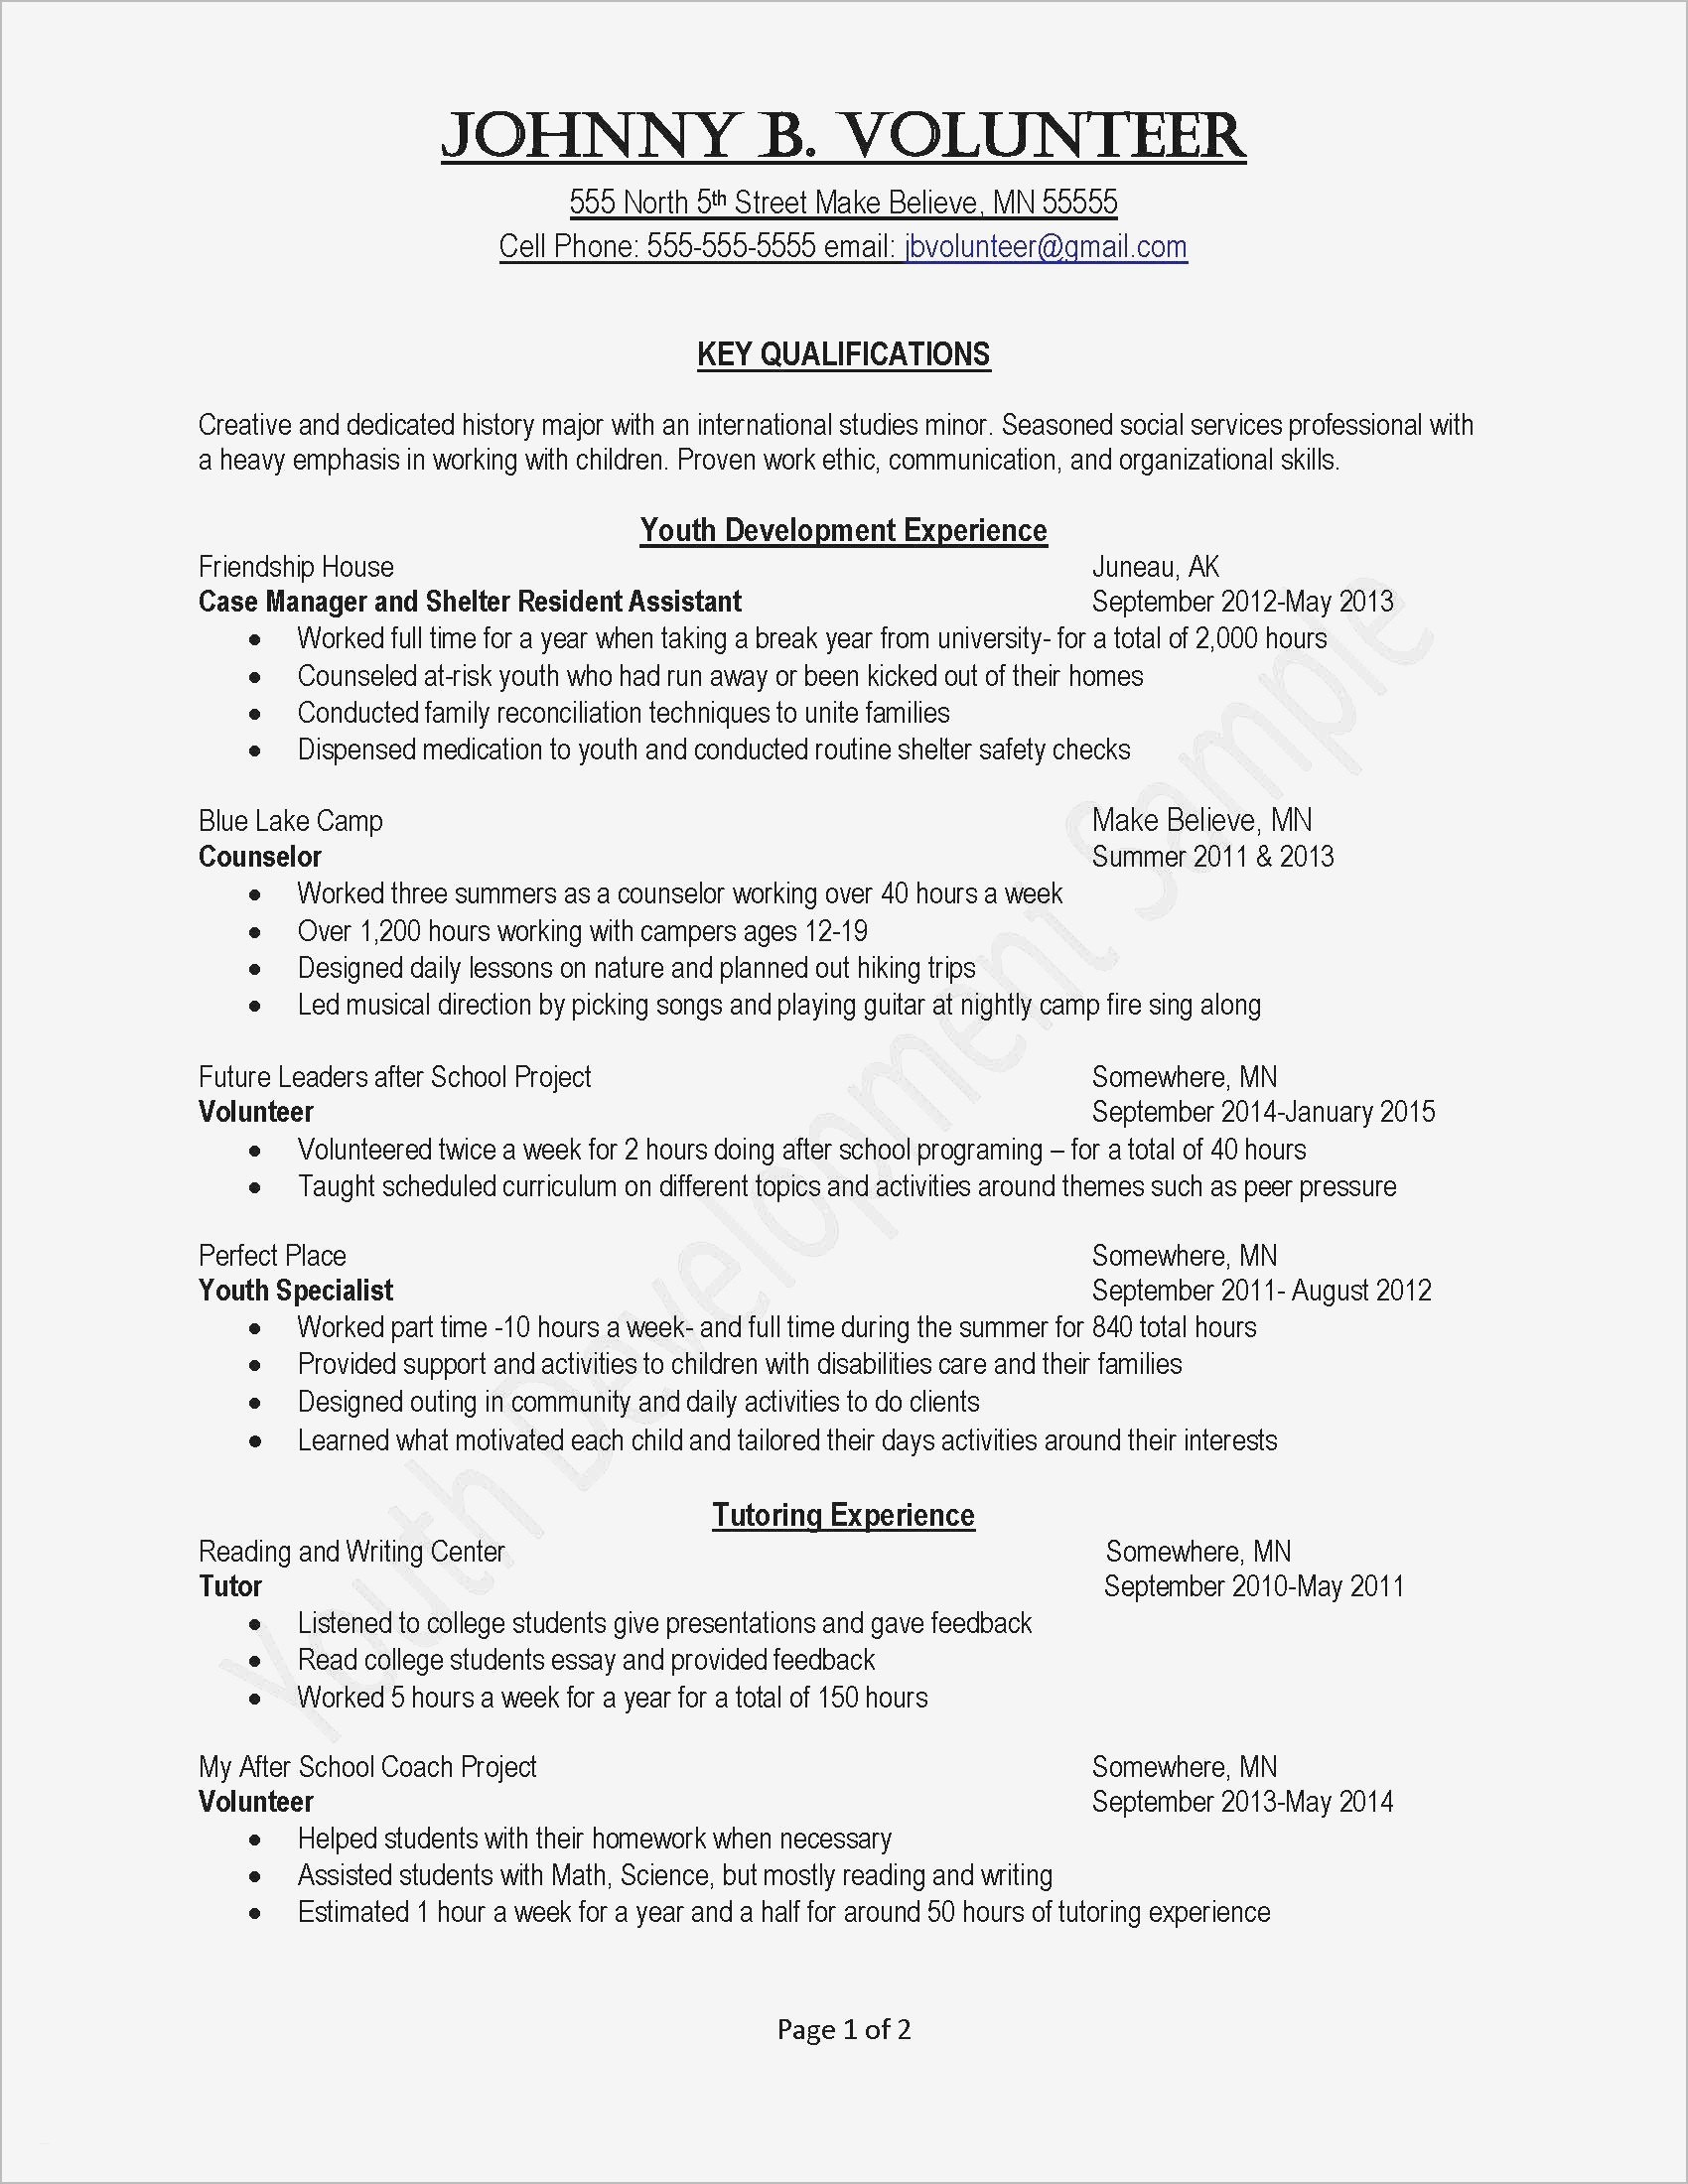 expert opinion letter template example-Job fer Letter Template Us Copy Od Consultant Cover Letter Fungram New 21 Resume Templates for 20-f